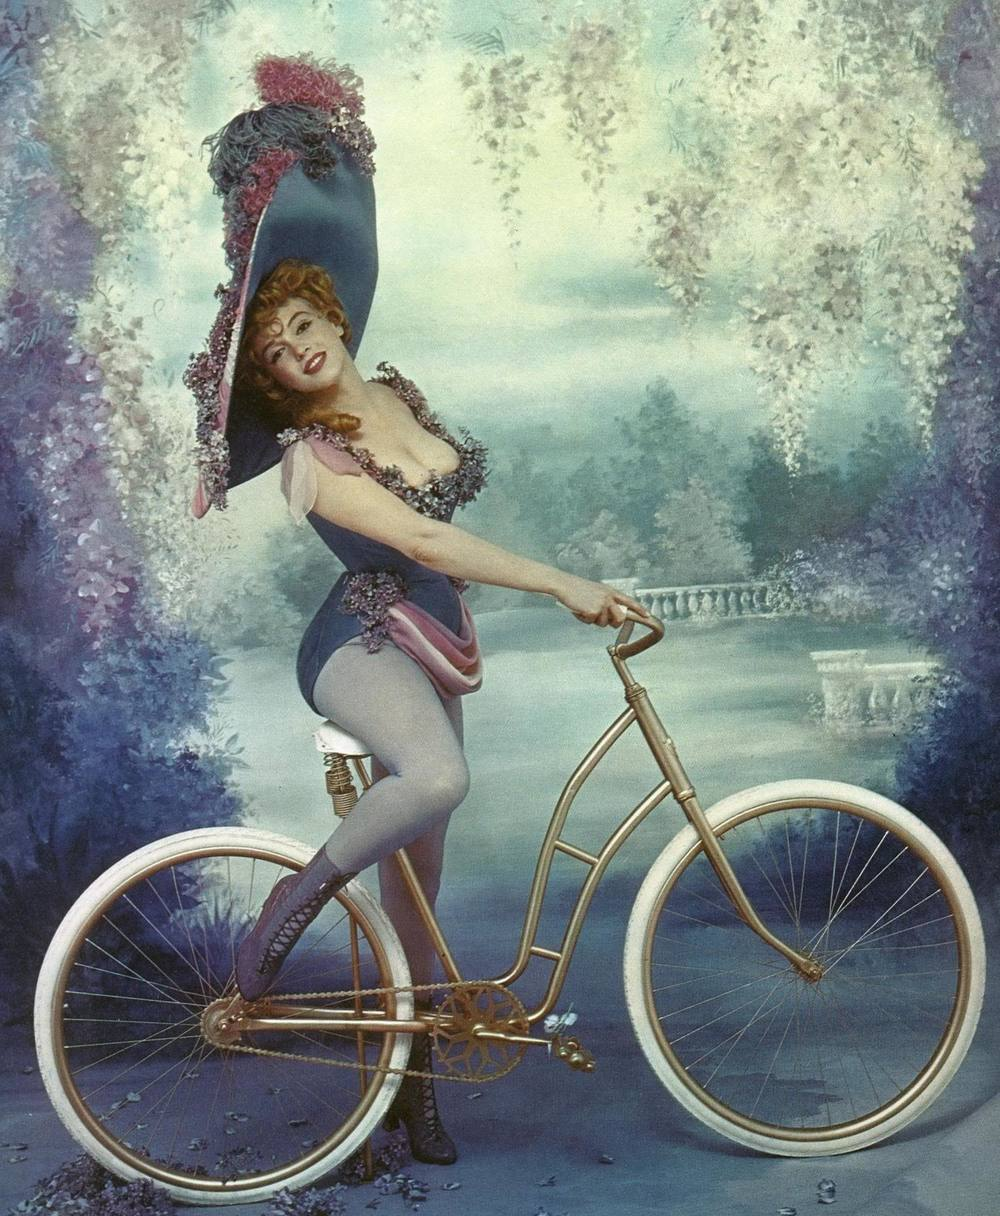 Marilyn Monroe dressed as stage performer Lillian Russell, 1958. Photo by Richard Avedon.